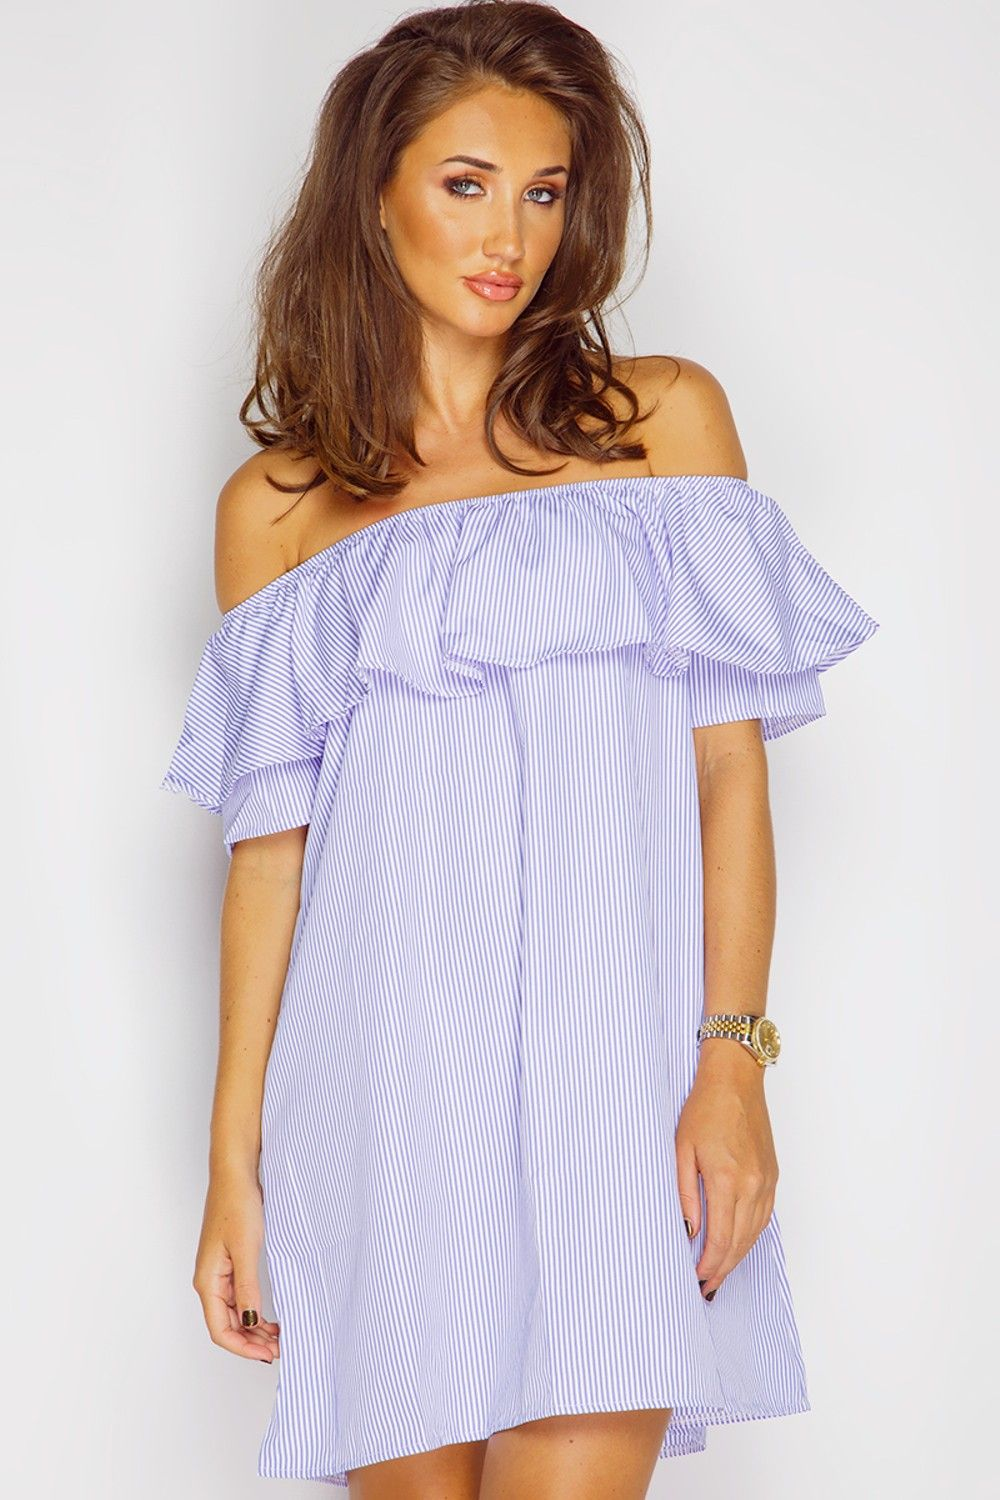 30a2566dbf9b Megan Mckenna Blue Pinstripe Bardot Summer Dress